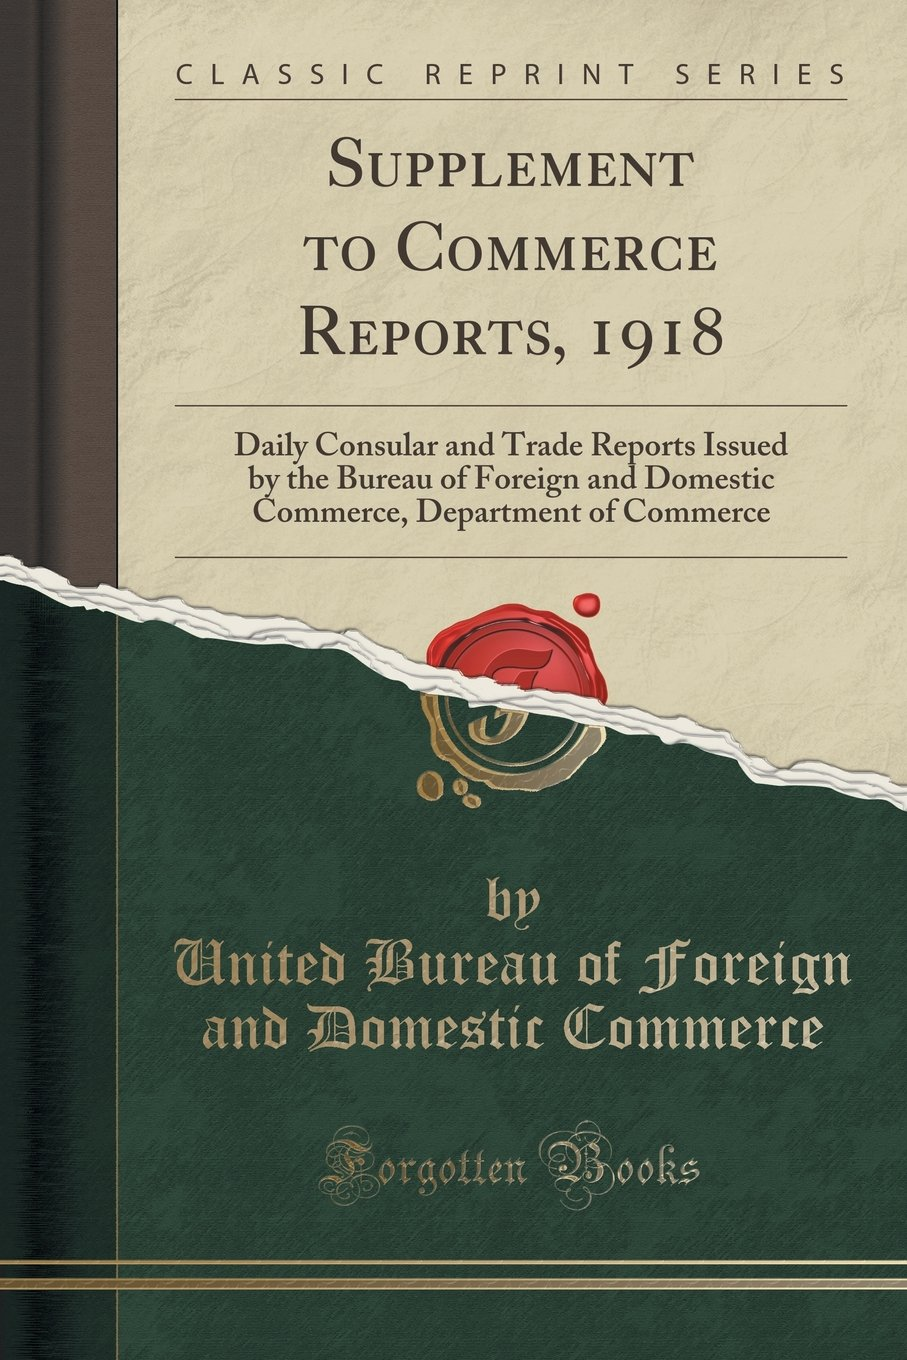 Supplement to Commerce Reports, 1918: Daily Consular and Trade Reports Issued by the Bureau of Foreign and Domestic Commerce, Department of Commerce (Classic Reprint) ebook